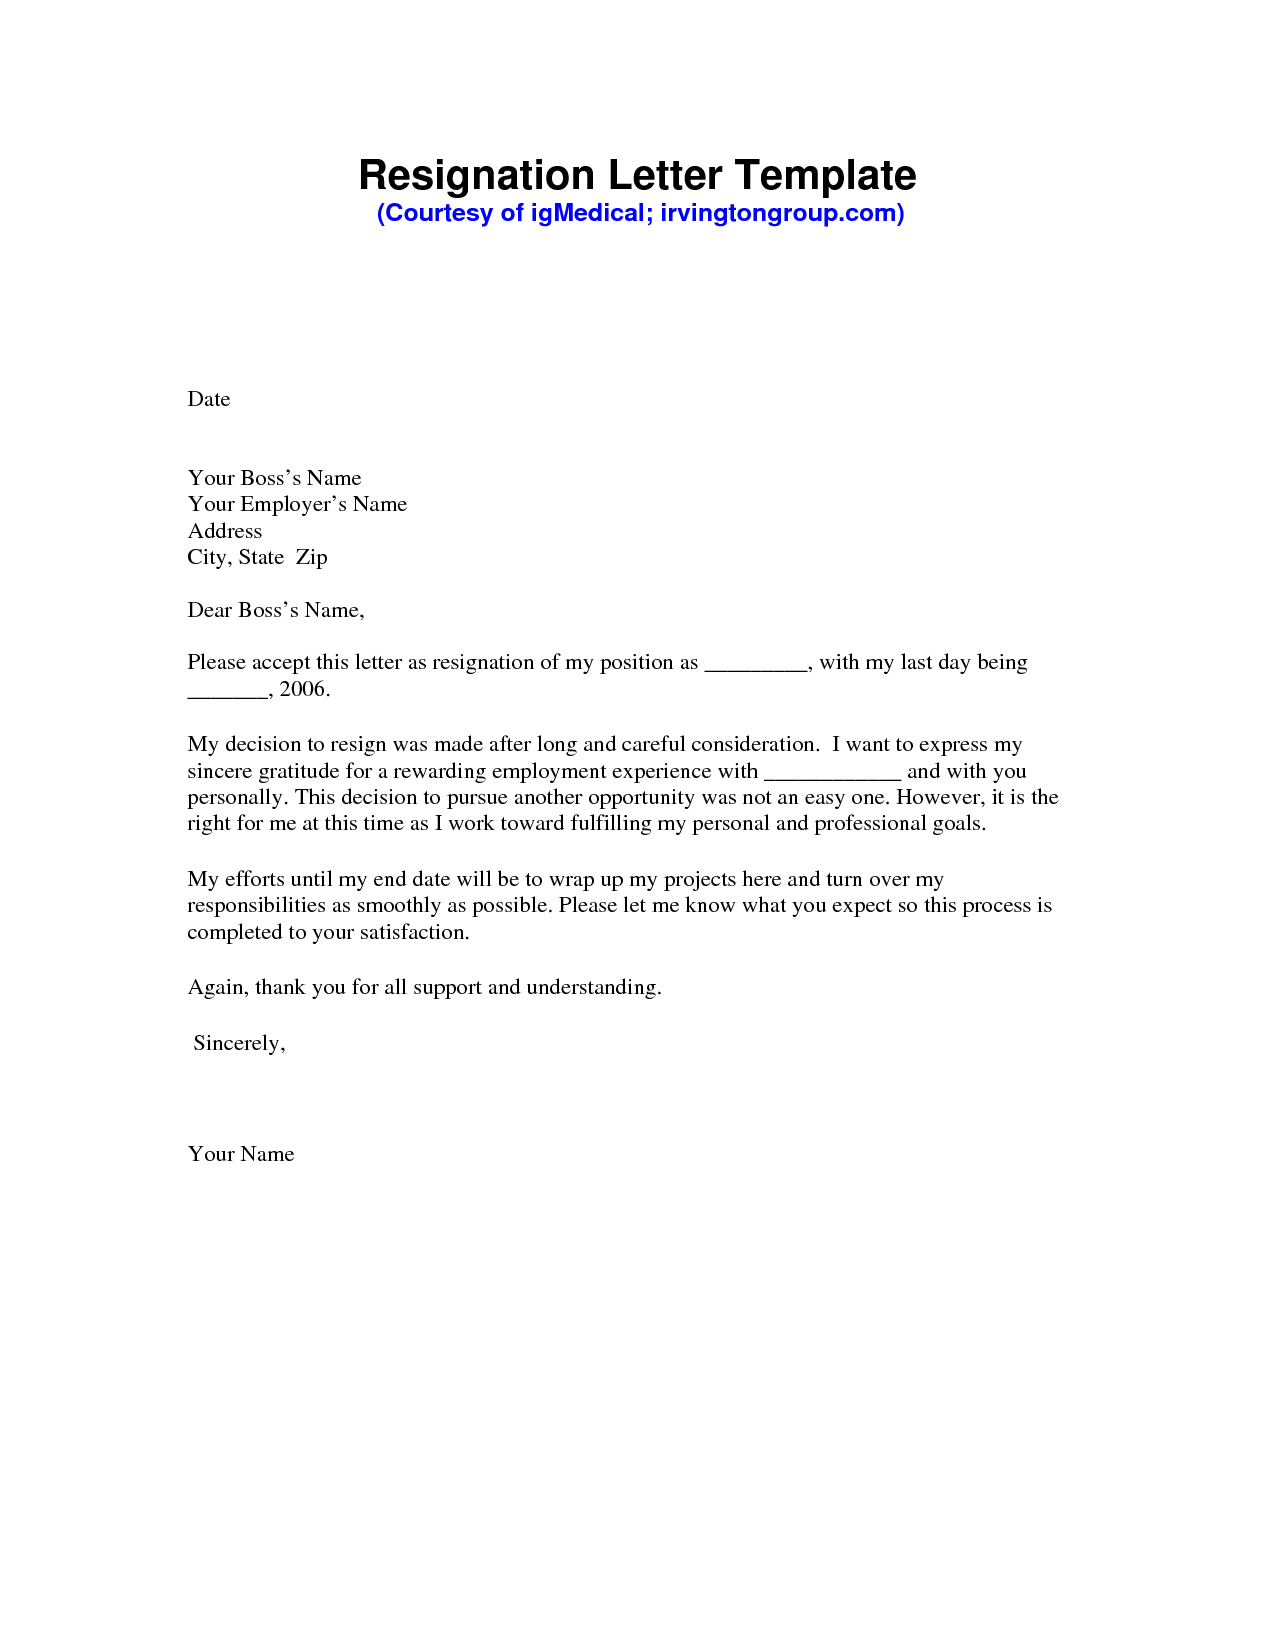 Resignation Letter Sample Pdf Resignation Letter Pinterest